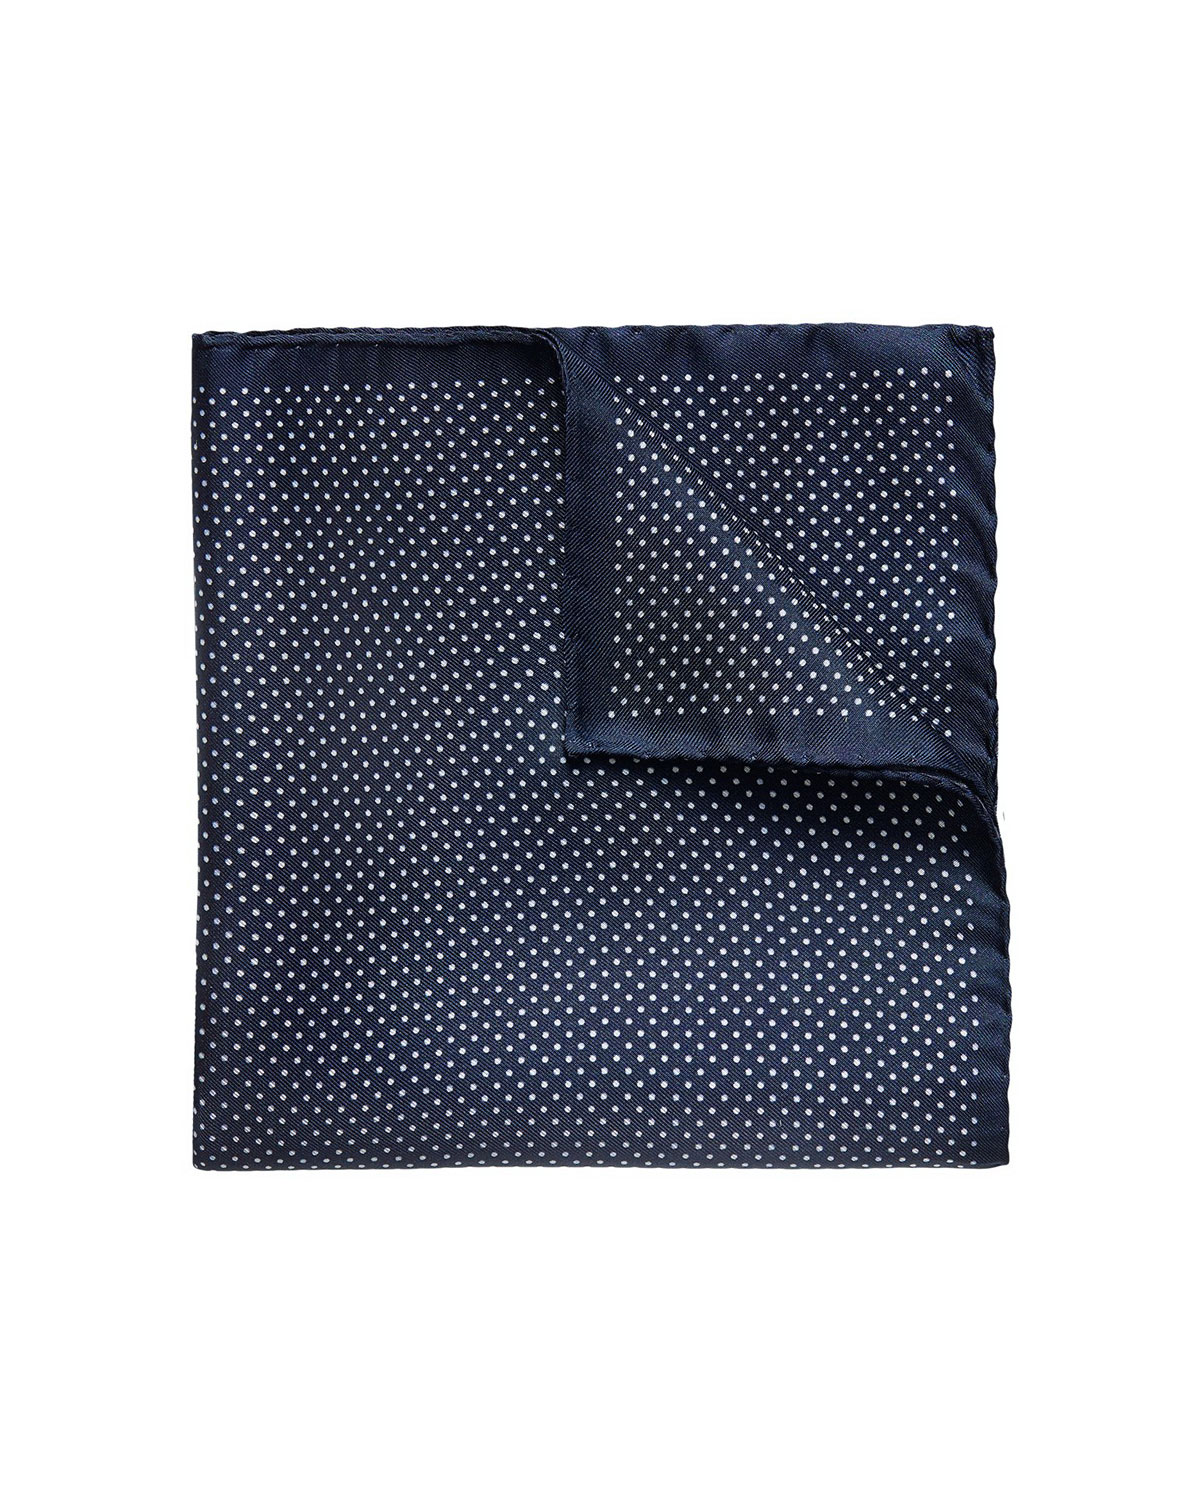 Eton  MEN'S POLKA DOT POCKET SQUARE